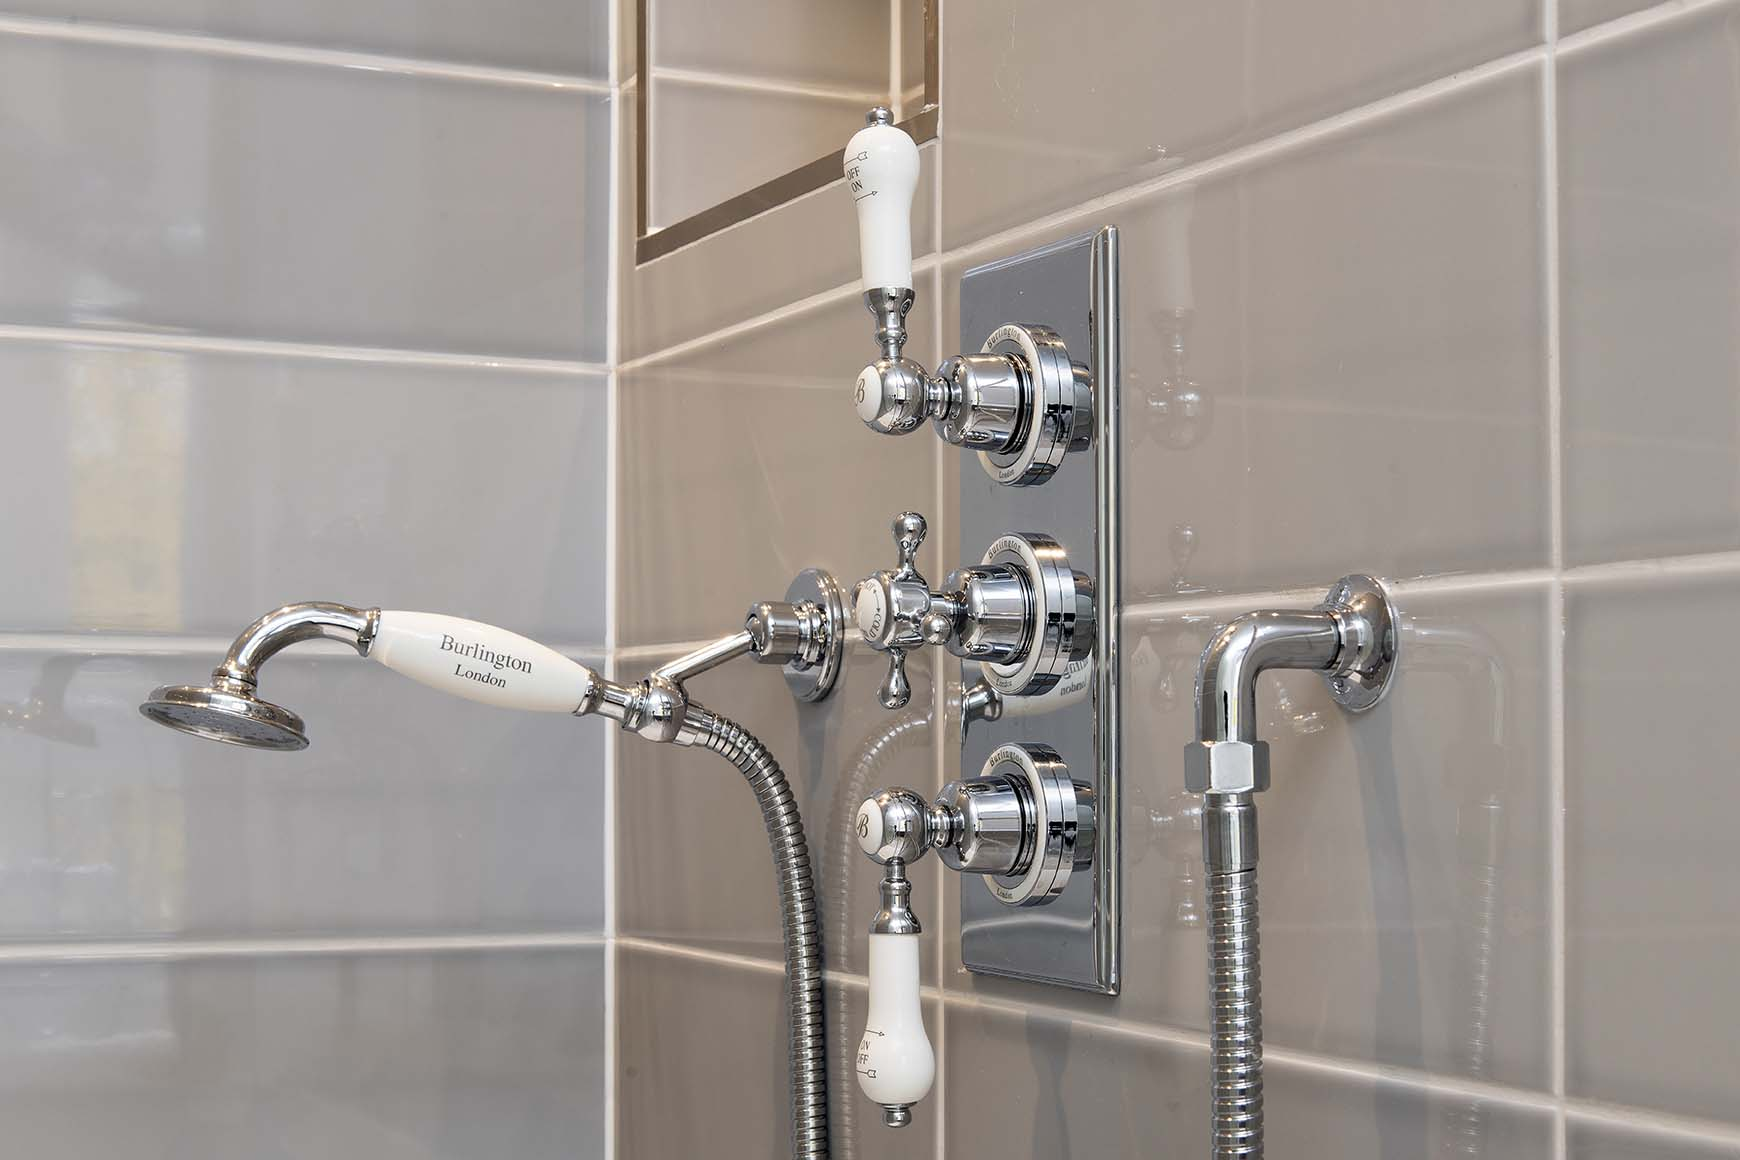 Cheyne Gardens Shower 7a.jpg